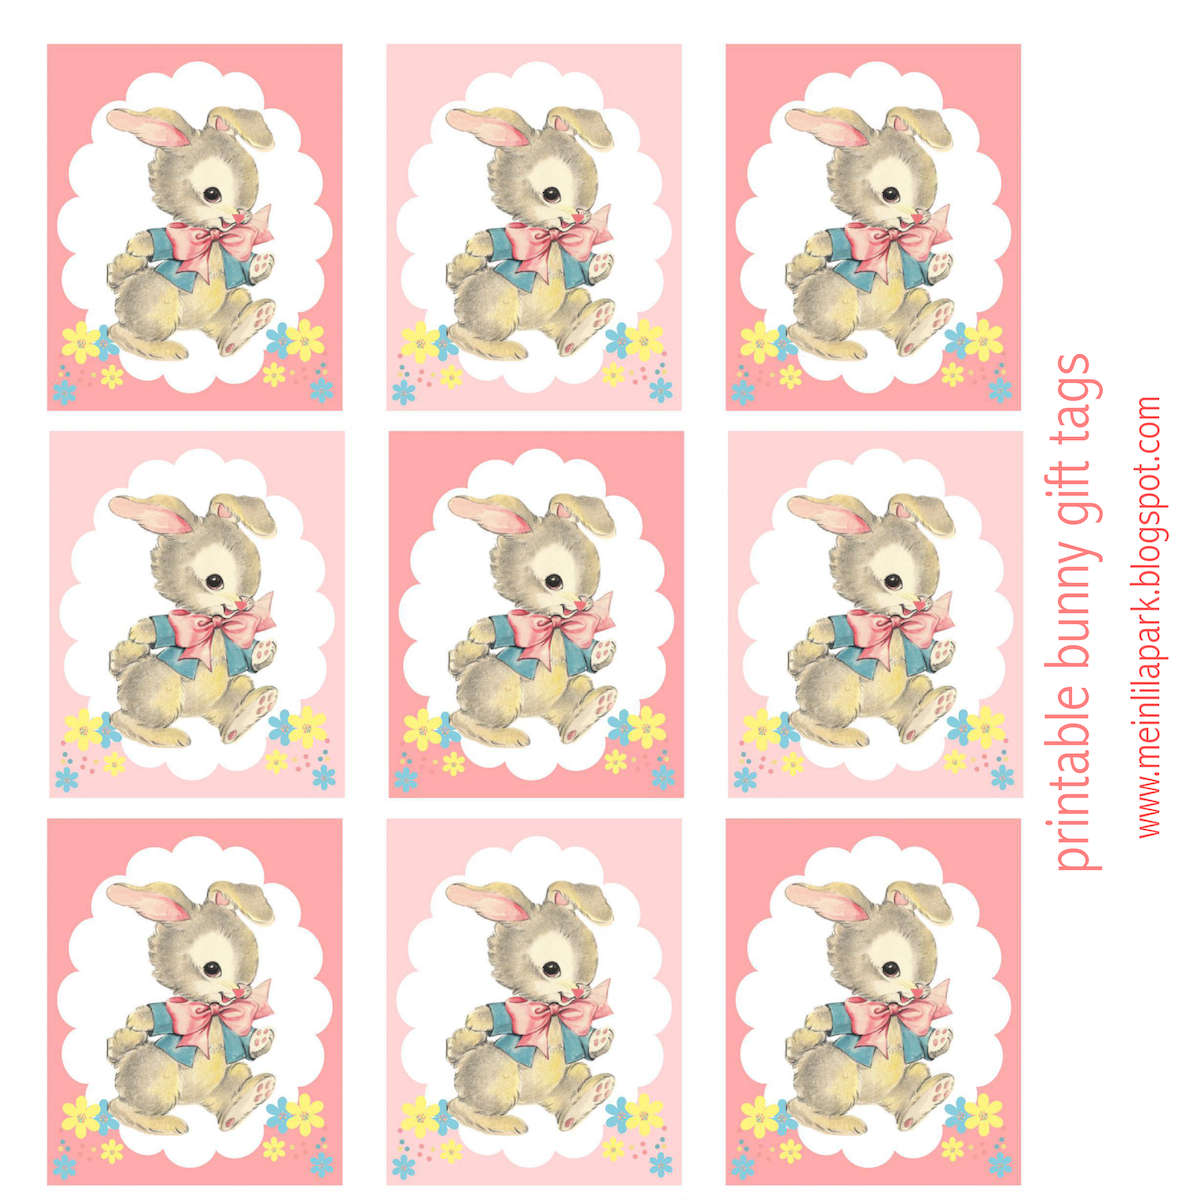 Free printable vintage bunny gift tags geschenkanhnger today i created some free printable bunny gift tags for you they also are perfect easter gift tags for baby showers the gift tags feature an adorably cute negle Choice Image